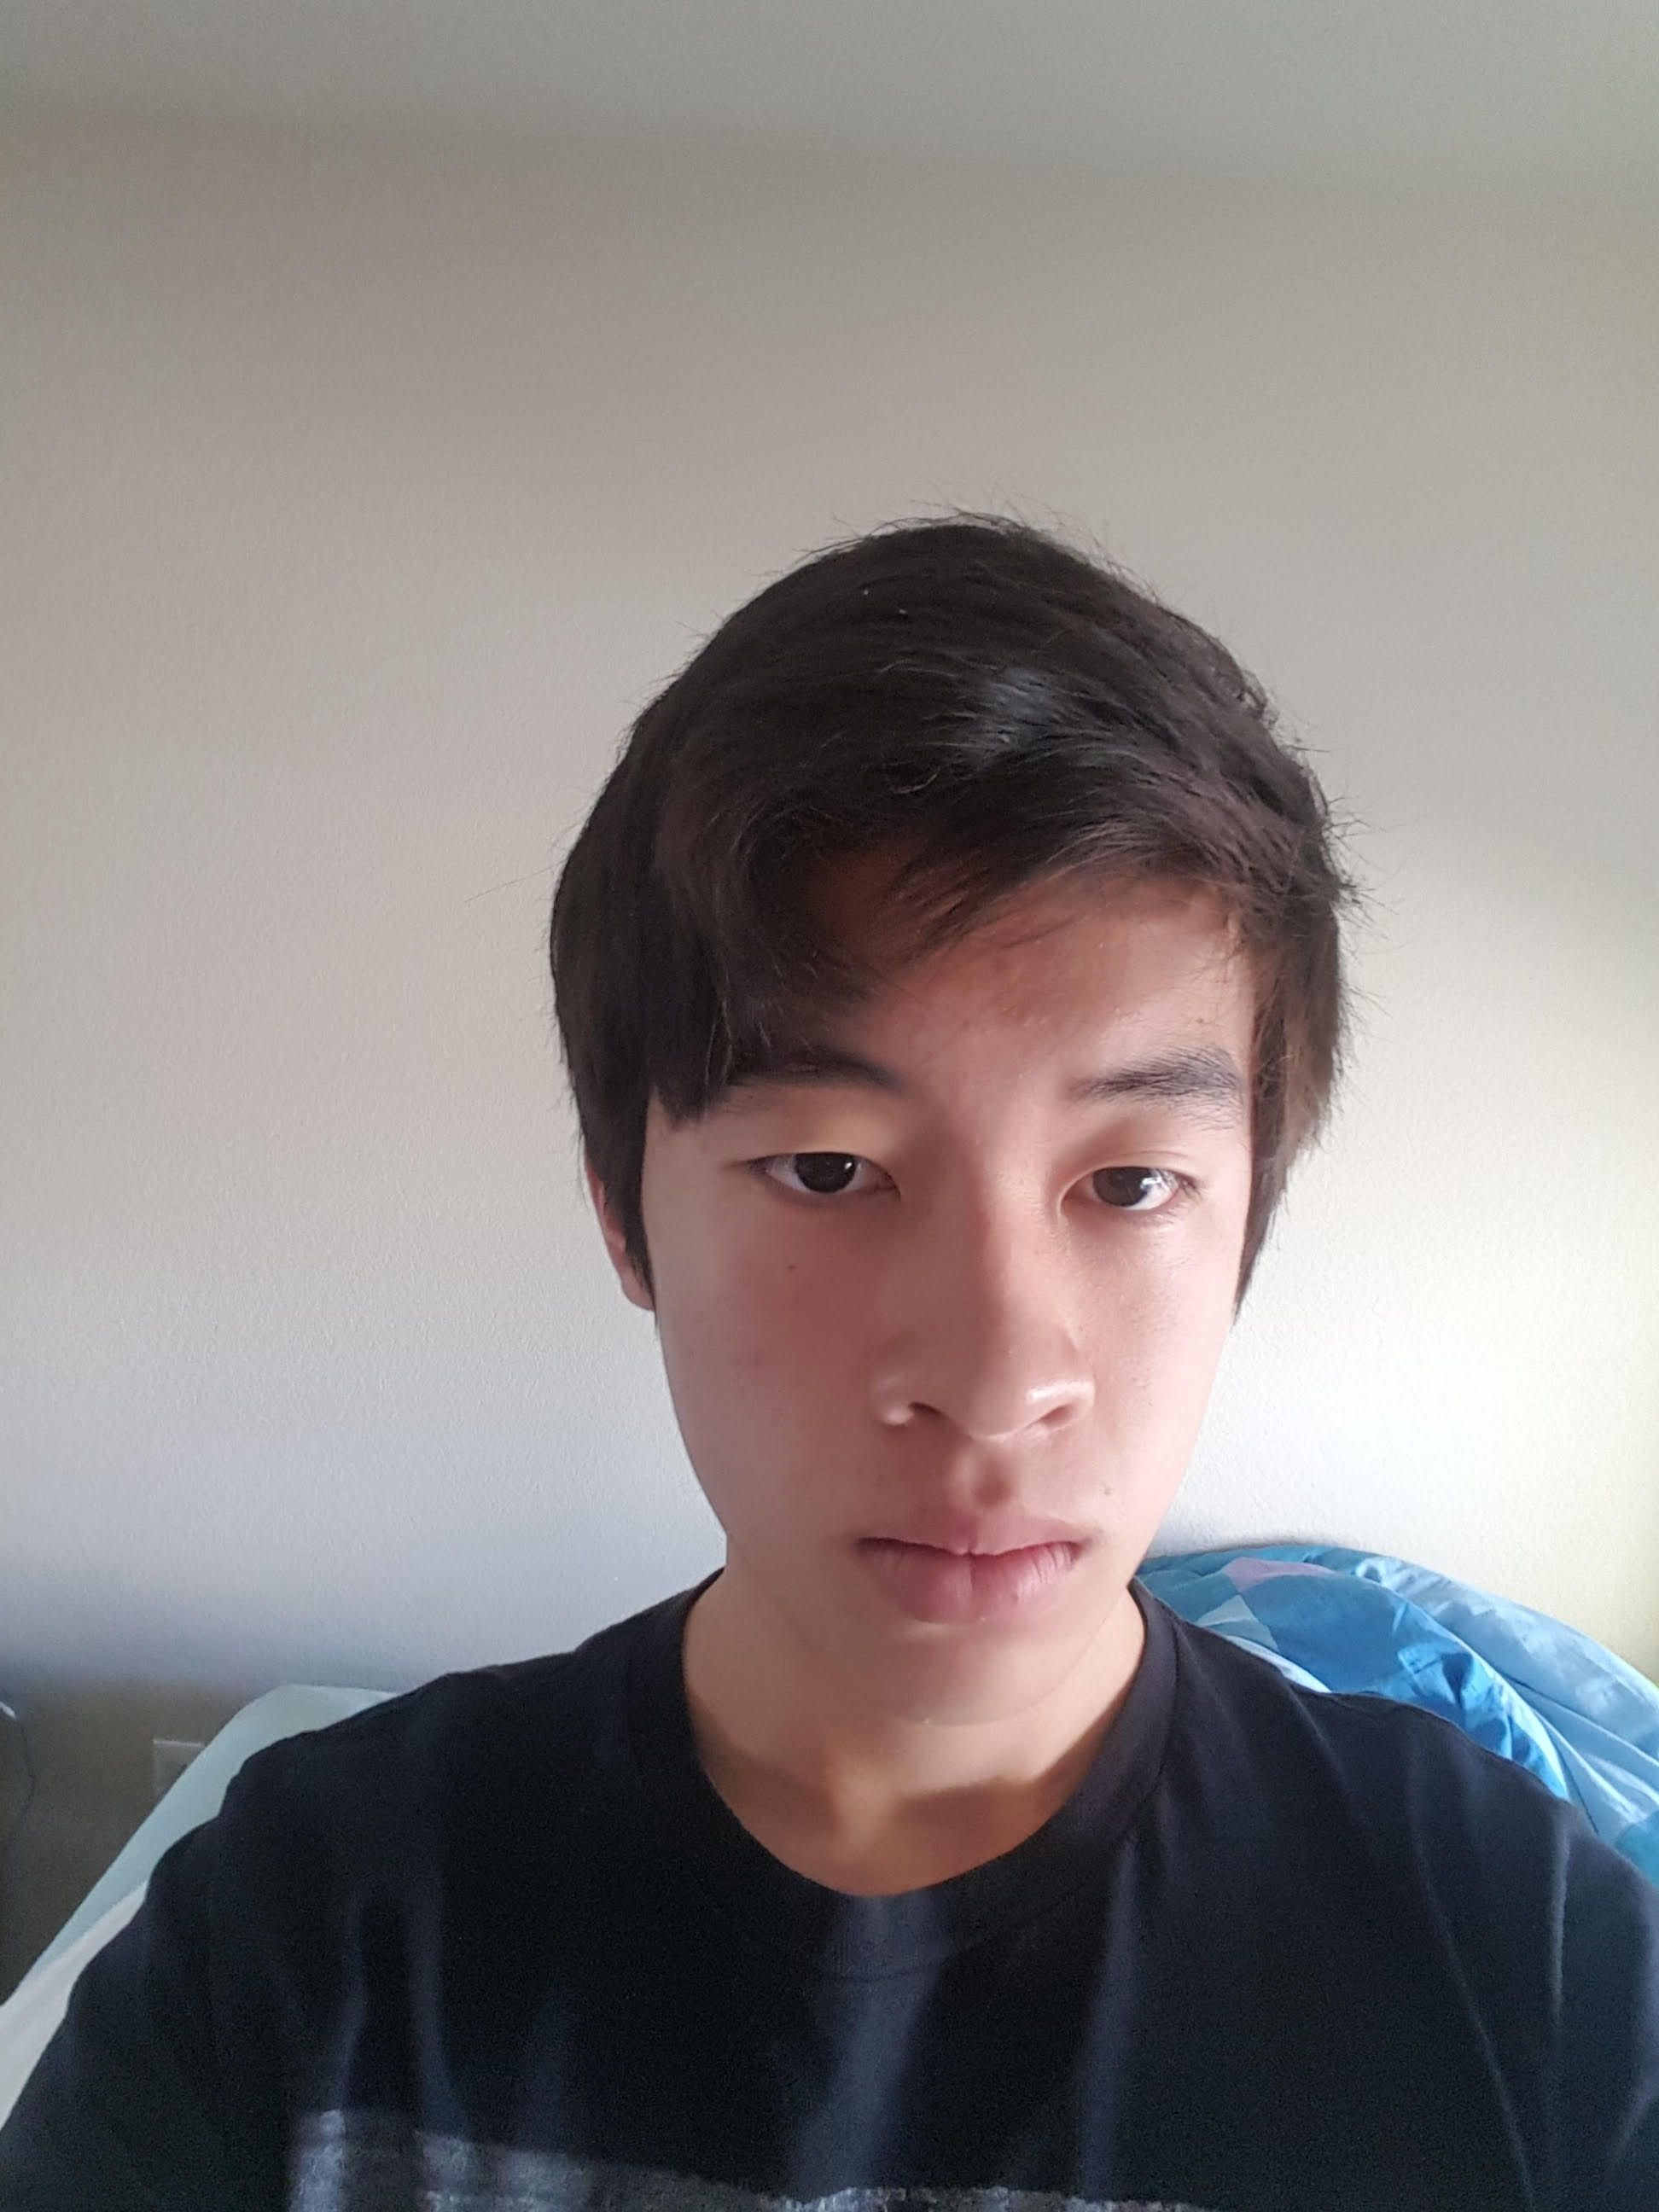 Should i get my hair cut shorterin a different style should i